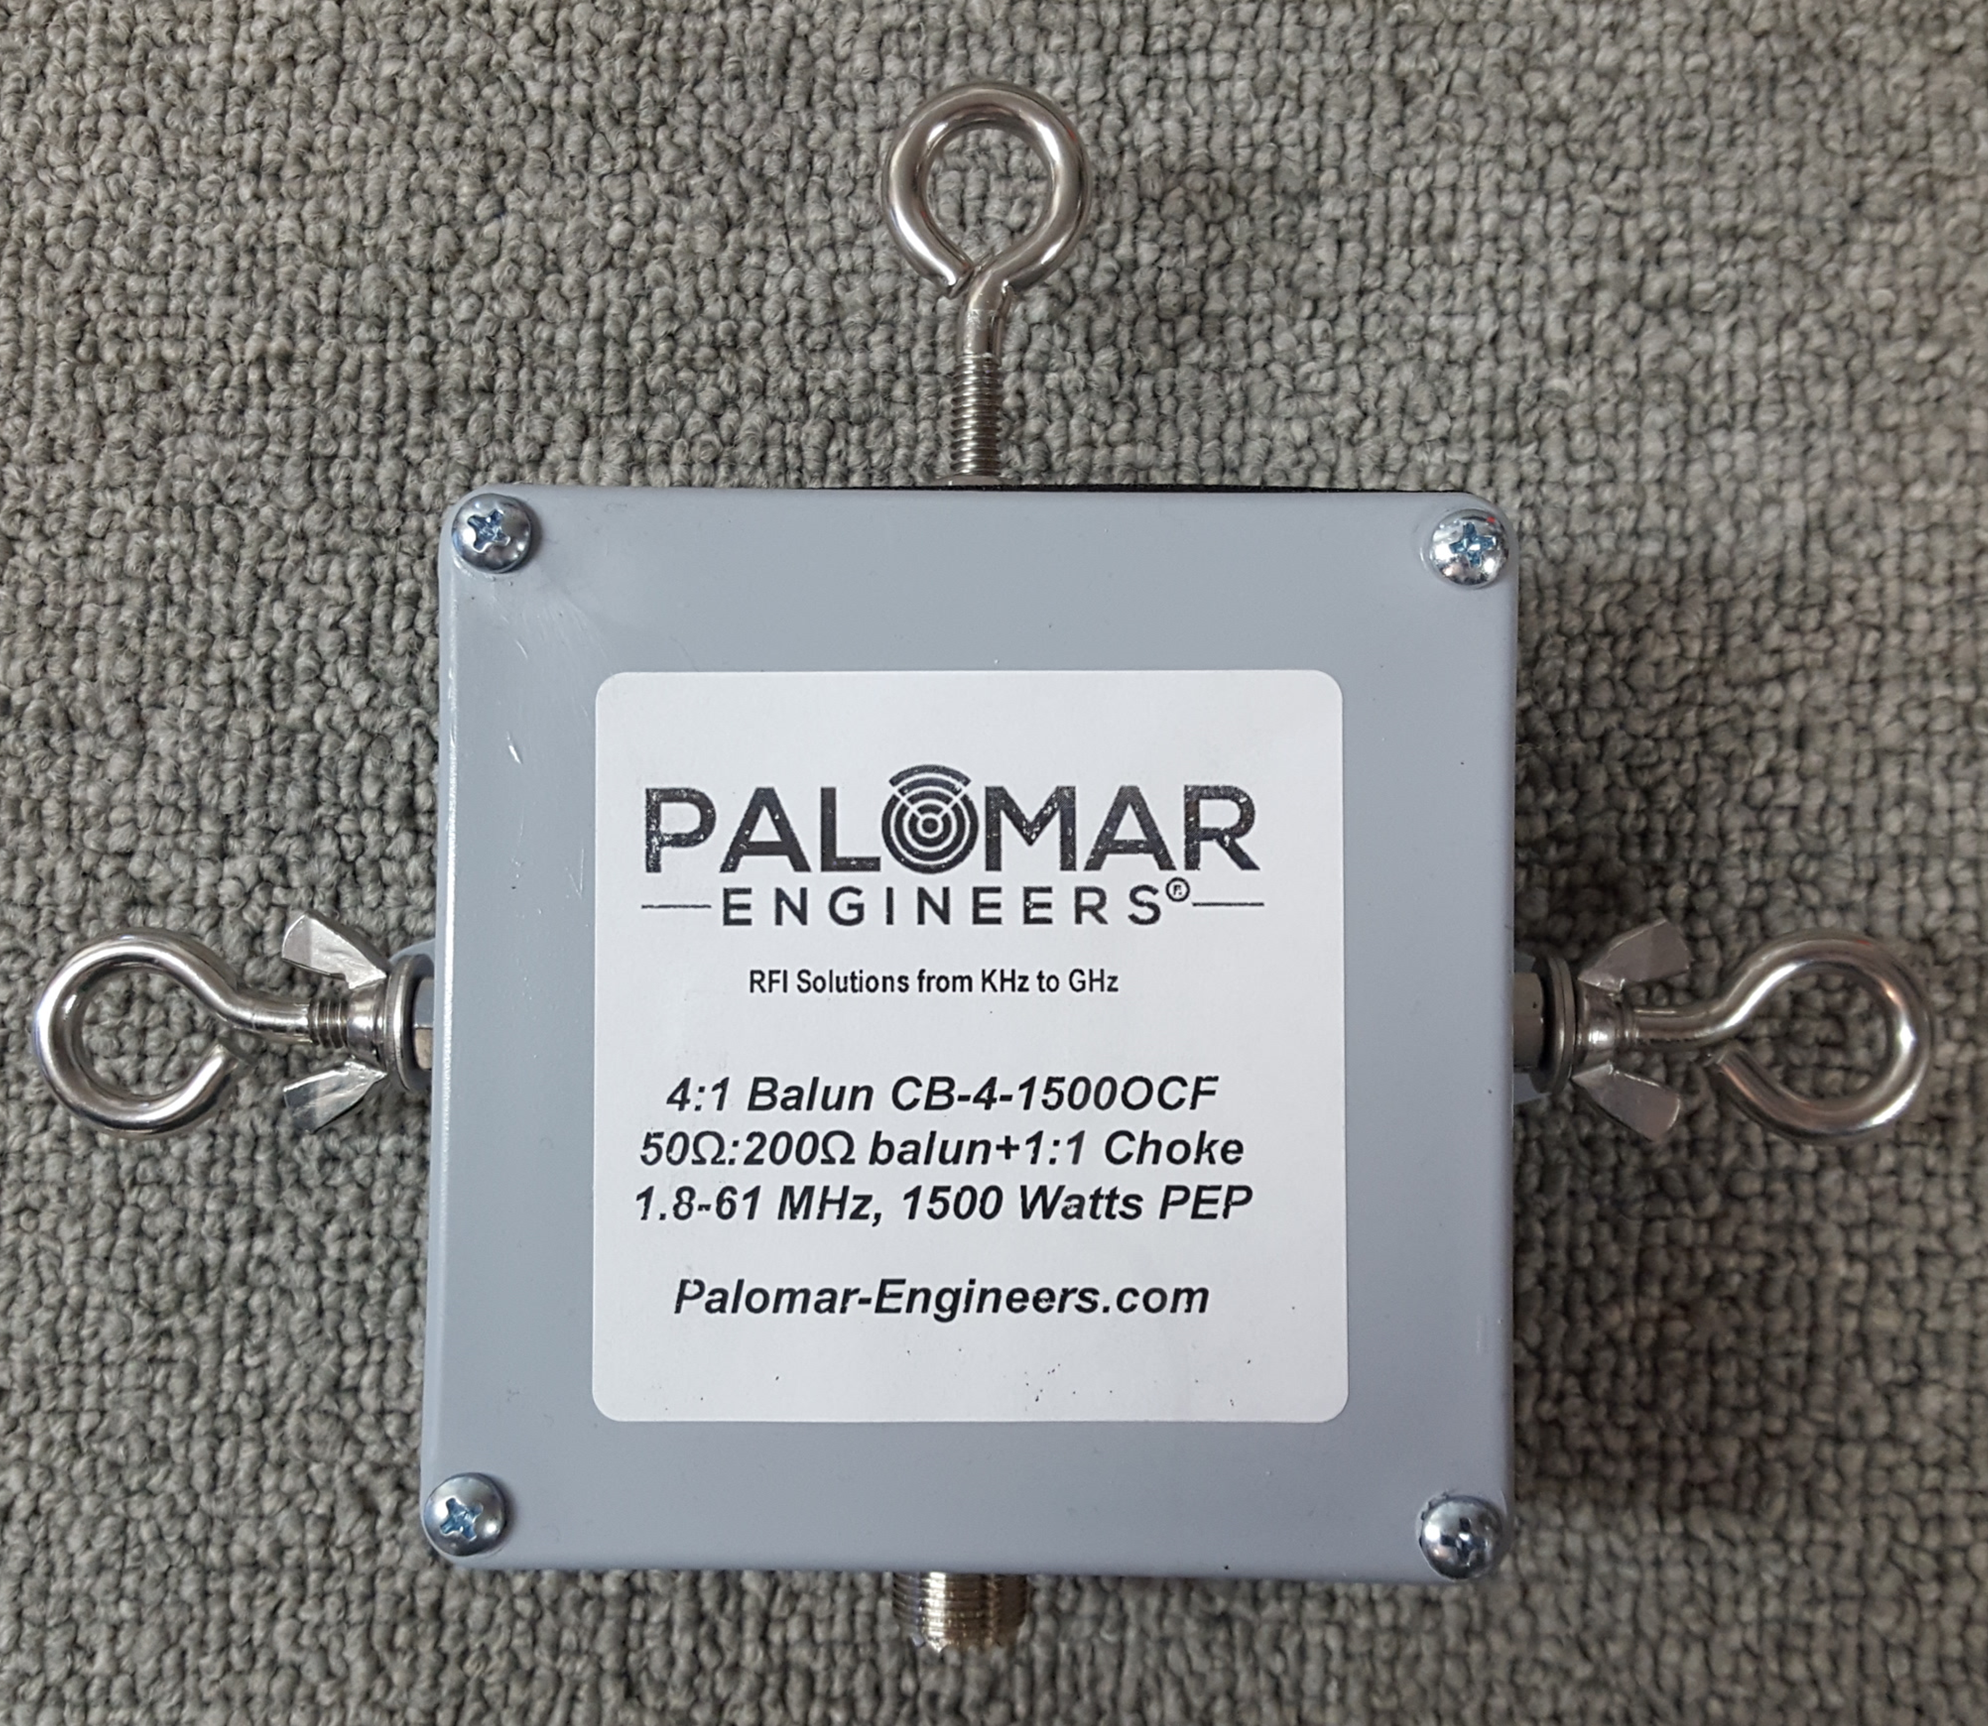 Off Center Fed (OCF) 4:1 Balun and Choke Combo, 1.8-61 MHz, 1.5/3/5KW PEP Options, Loop Antennas CB-4-1500OCF